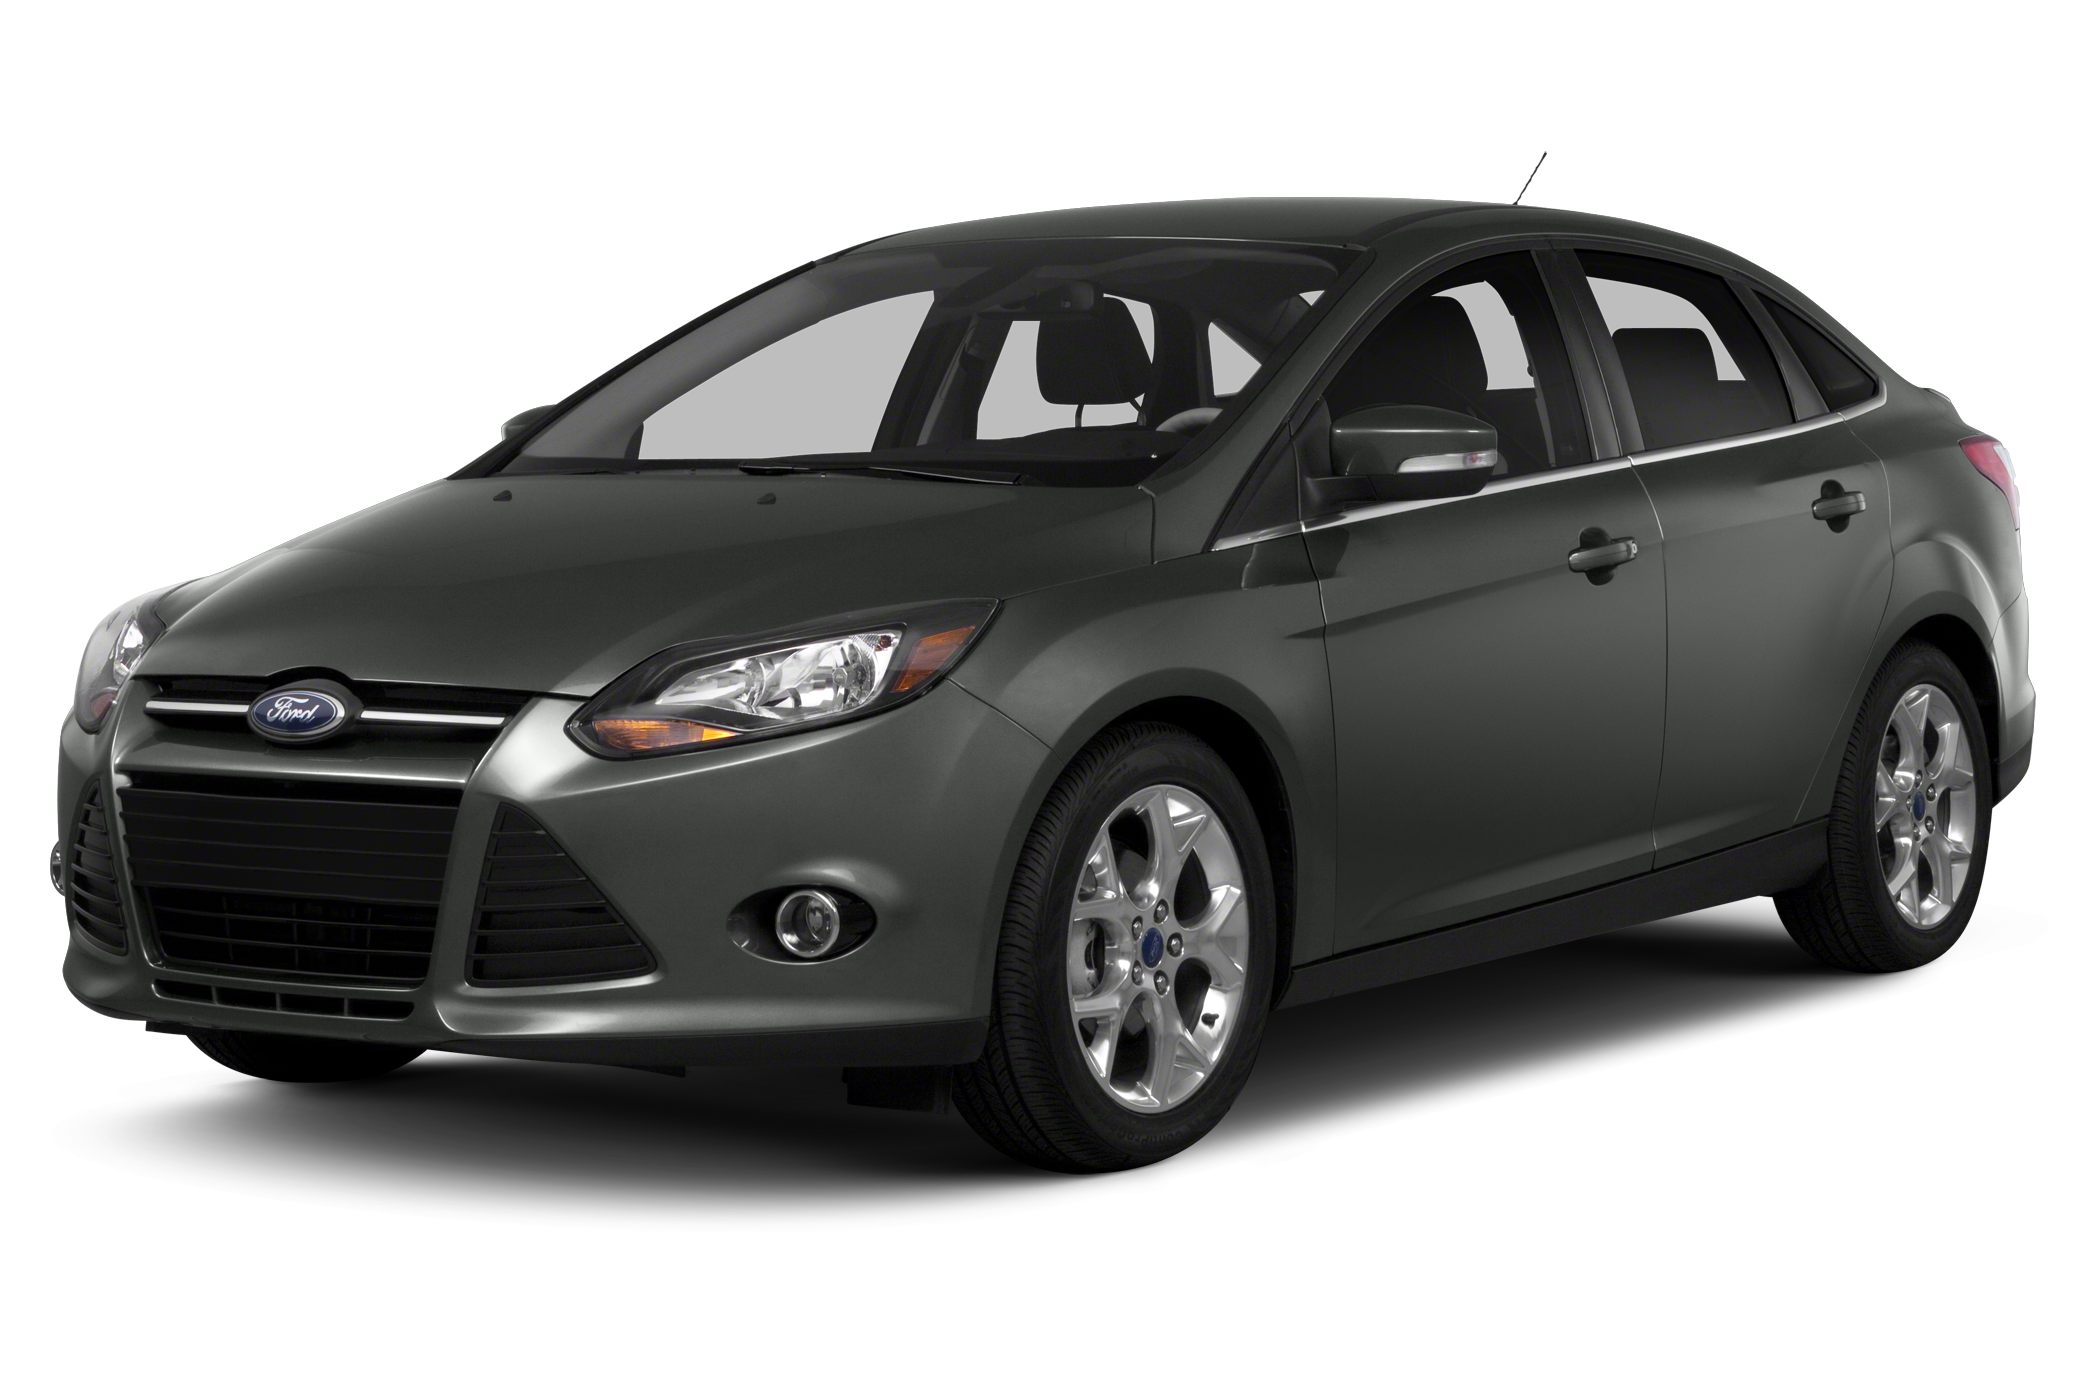 2014 Ford Focus SE Sedan for sale in Chantilly for $14,166 with 0 miles.